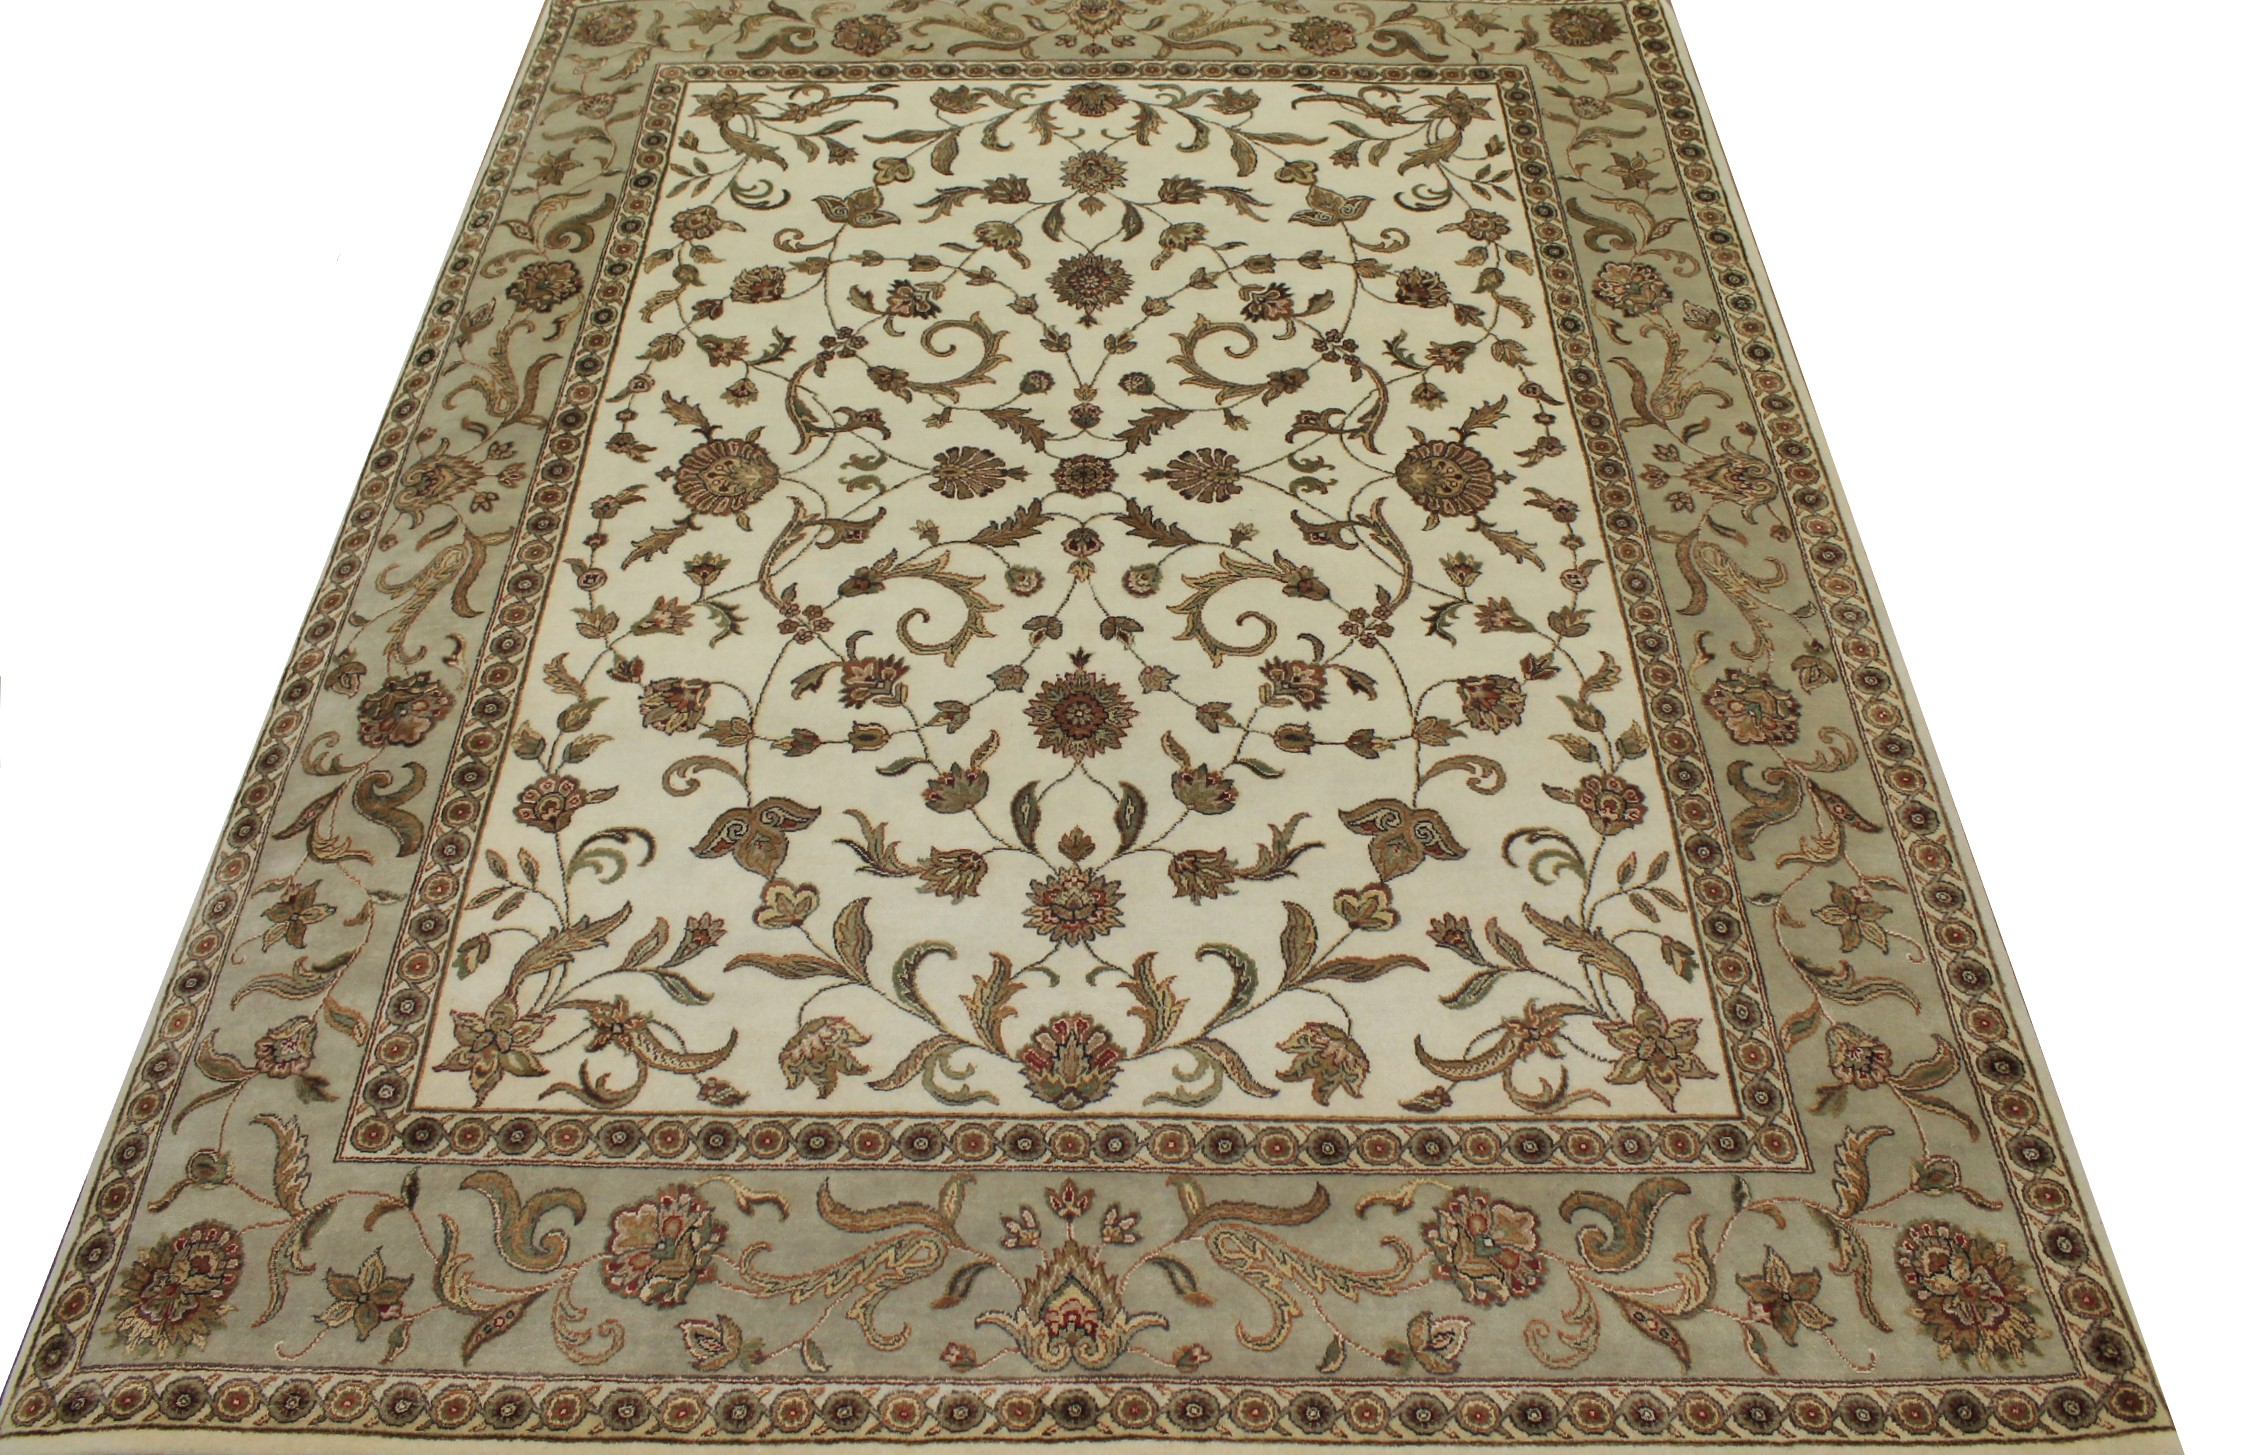 8x10 Silk Flower Hand Knotted Wool Area Rug - MR16013